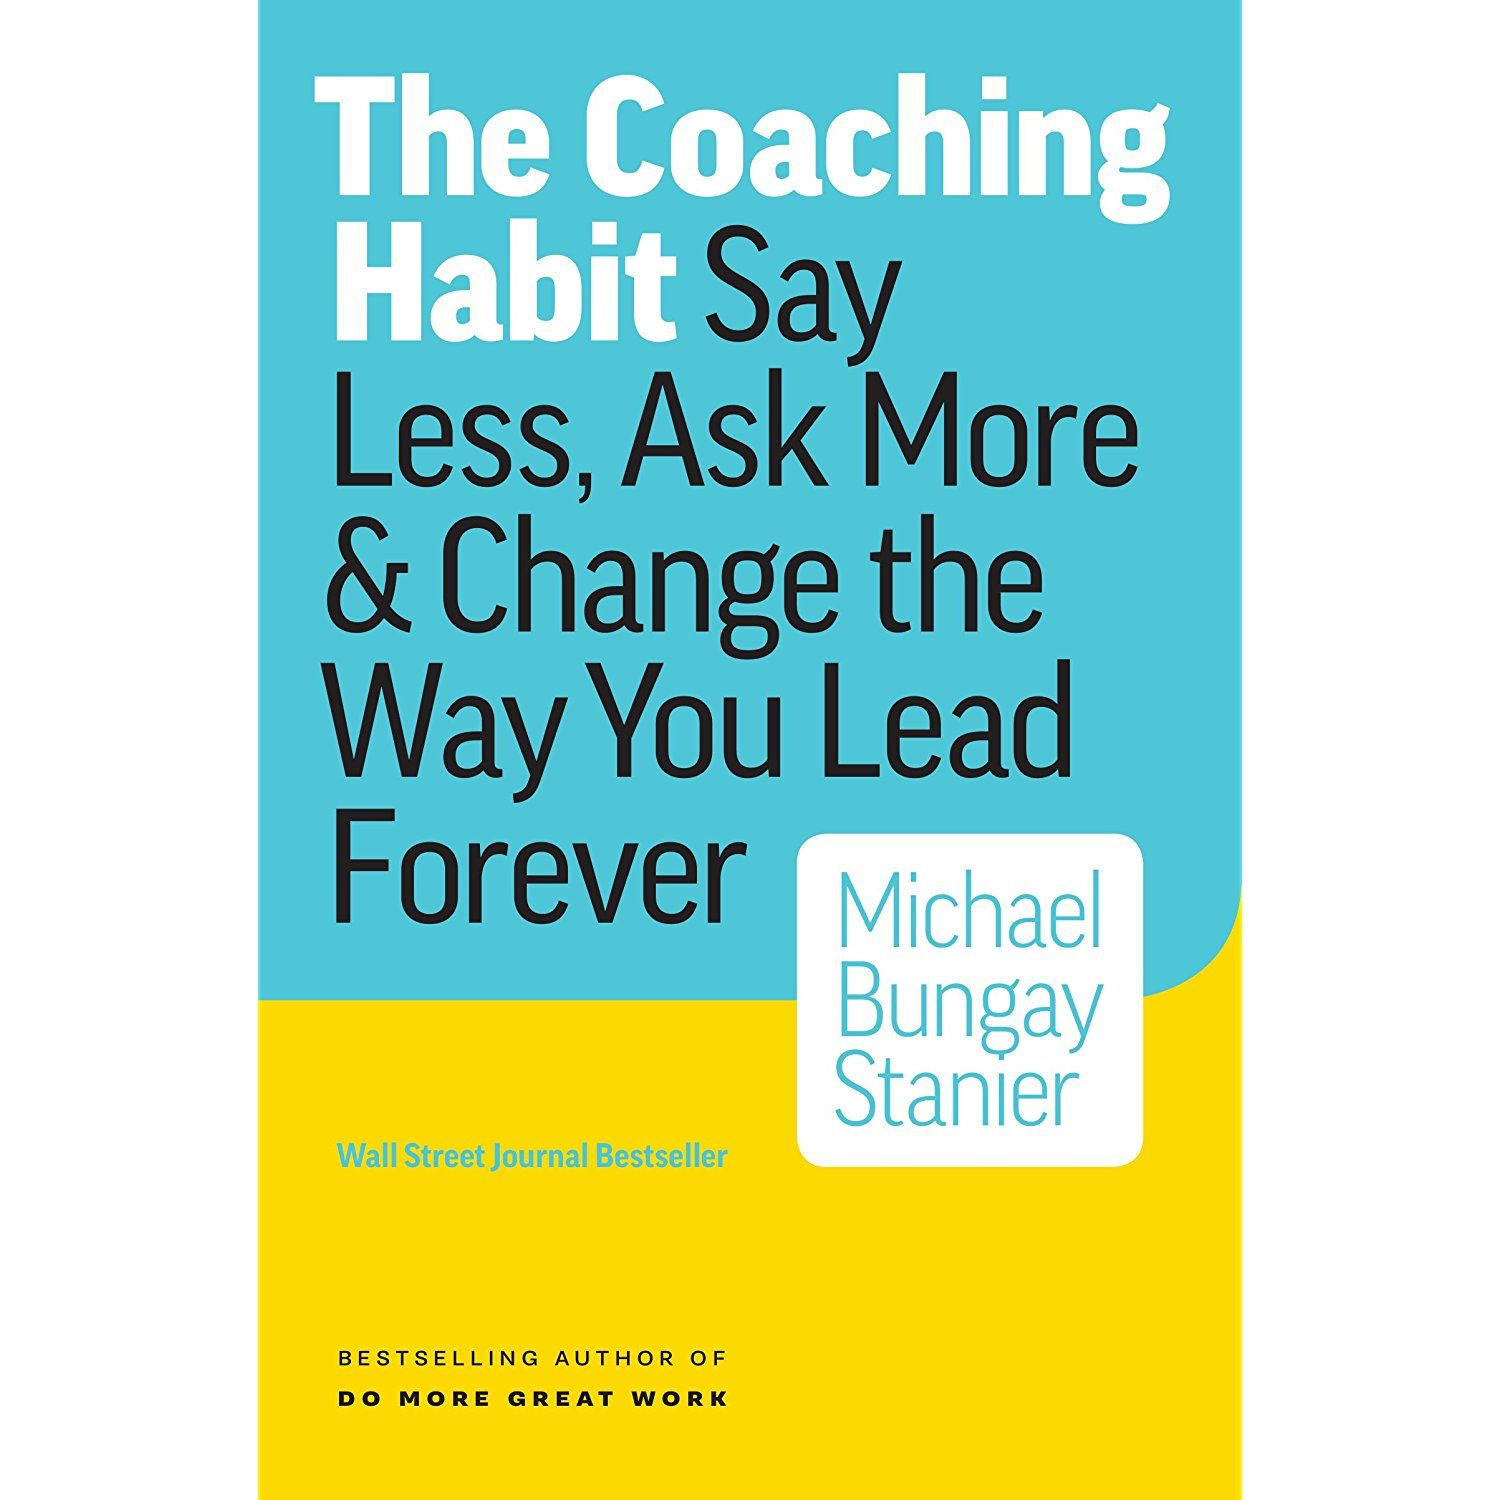 The Coaching Habit Say Less Ask More Kindlestore